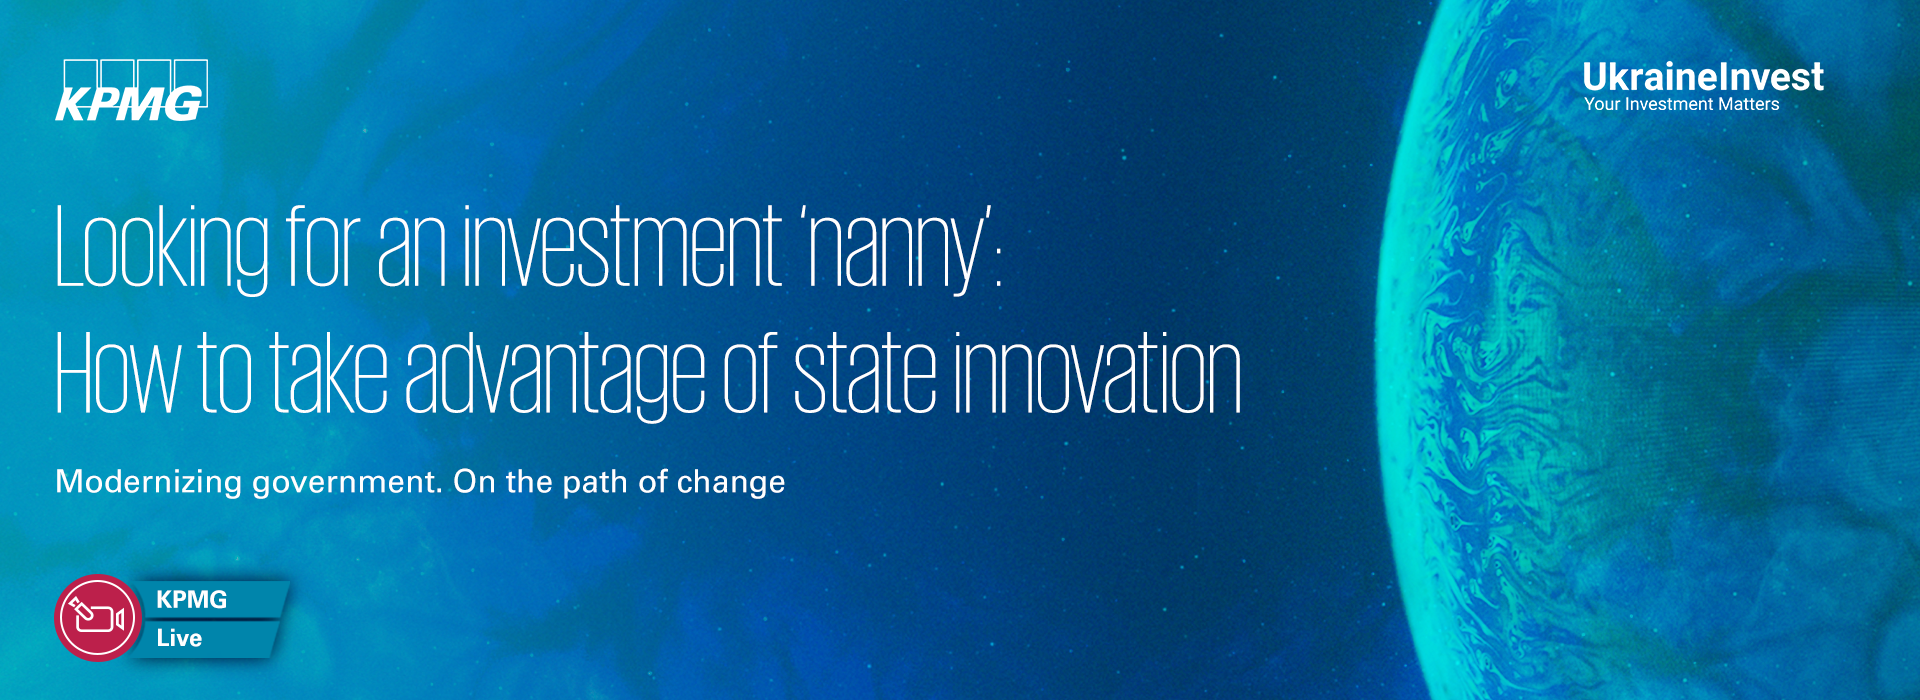 Looking for an Investment 'Nanny': How to Take Advantage of State Innovation